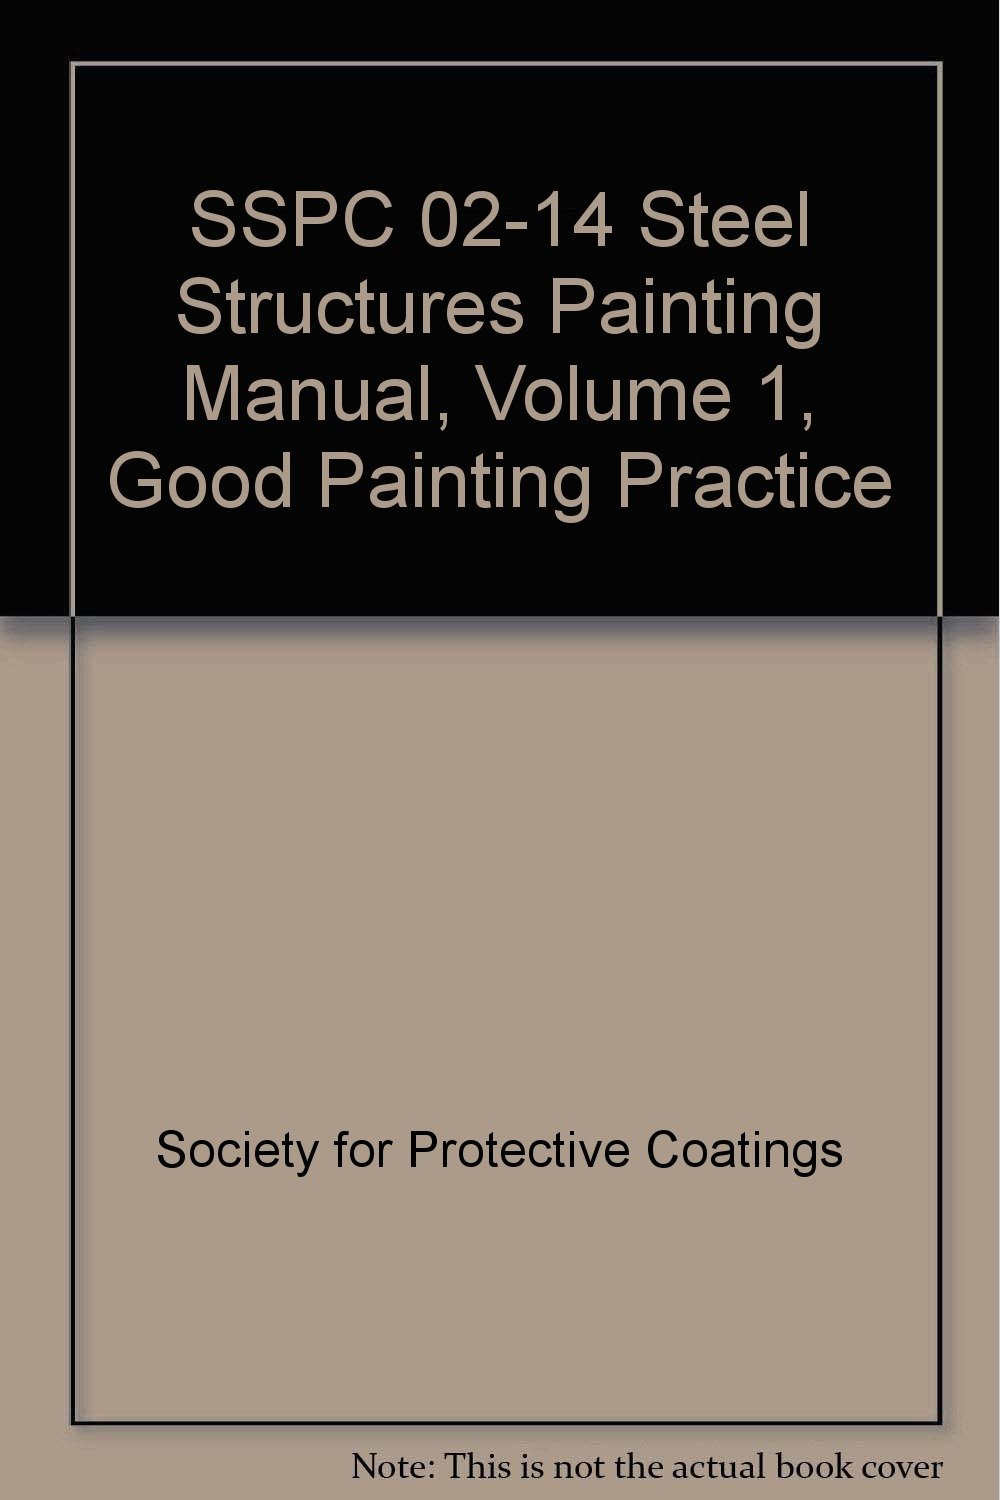 sspc 02 14 steel structures painting manual volume 1 good painting rh amazon com sspc painting manual vol 1 latest sspc painting manual vol 1